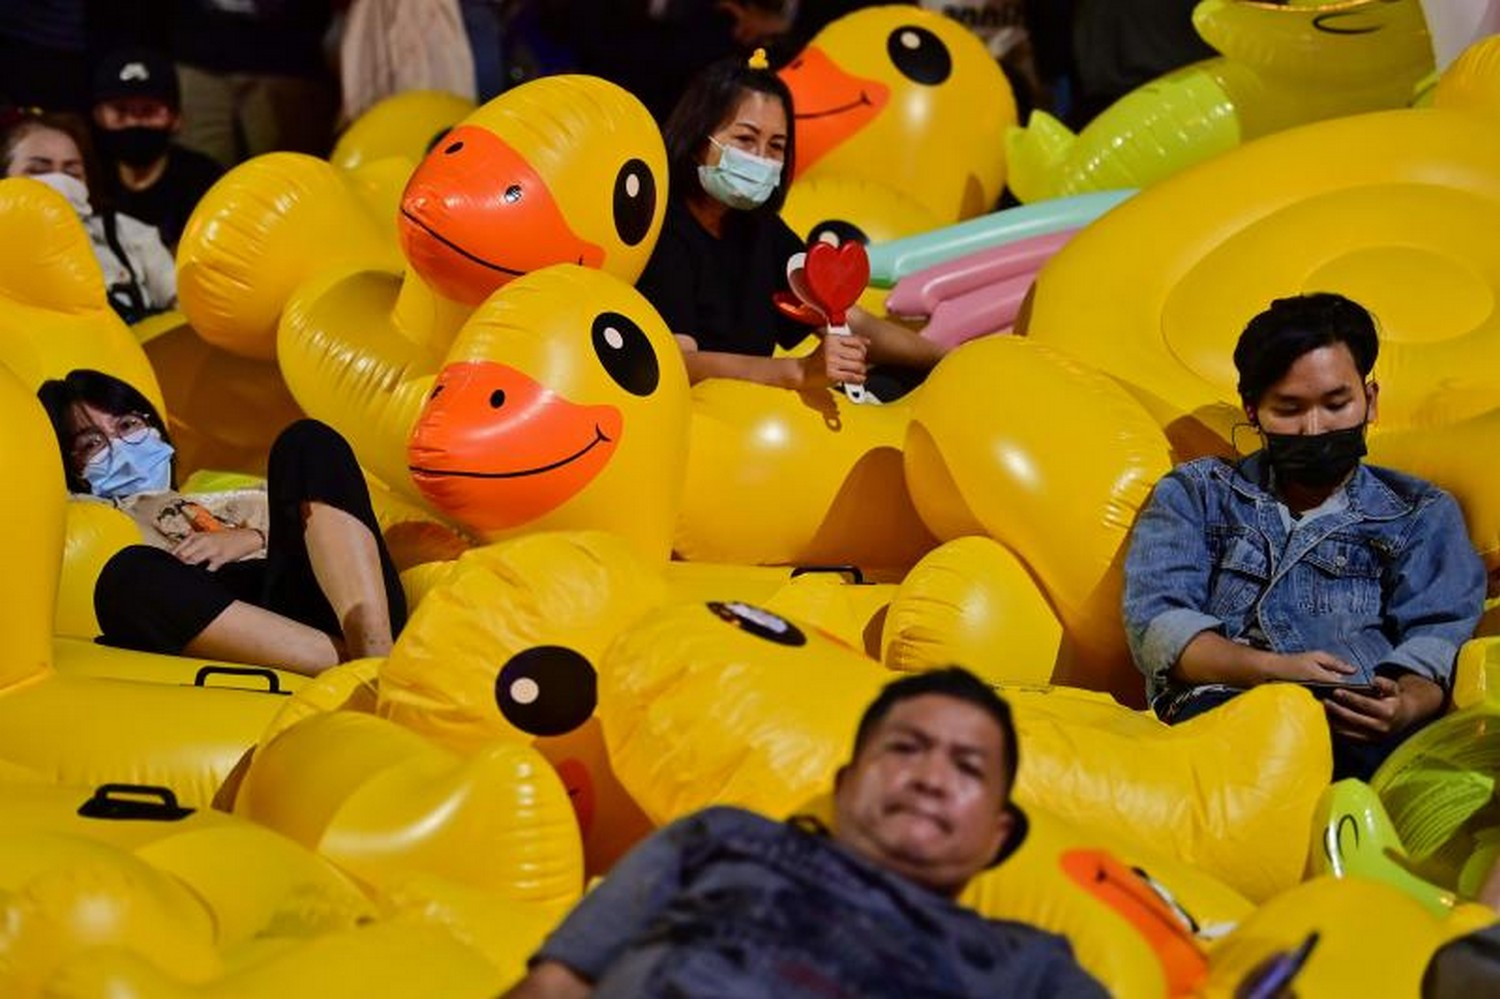 Yellow ducks became protest symbol by accident